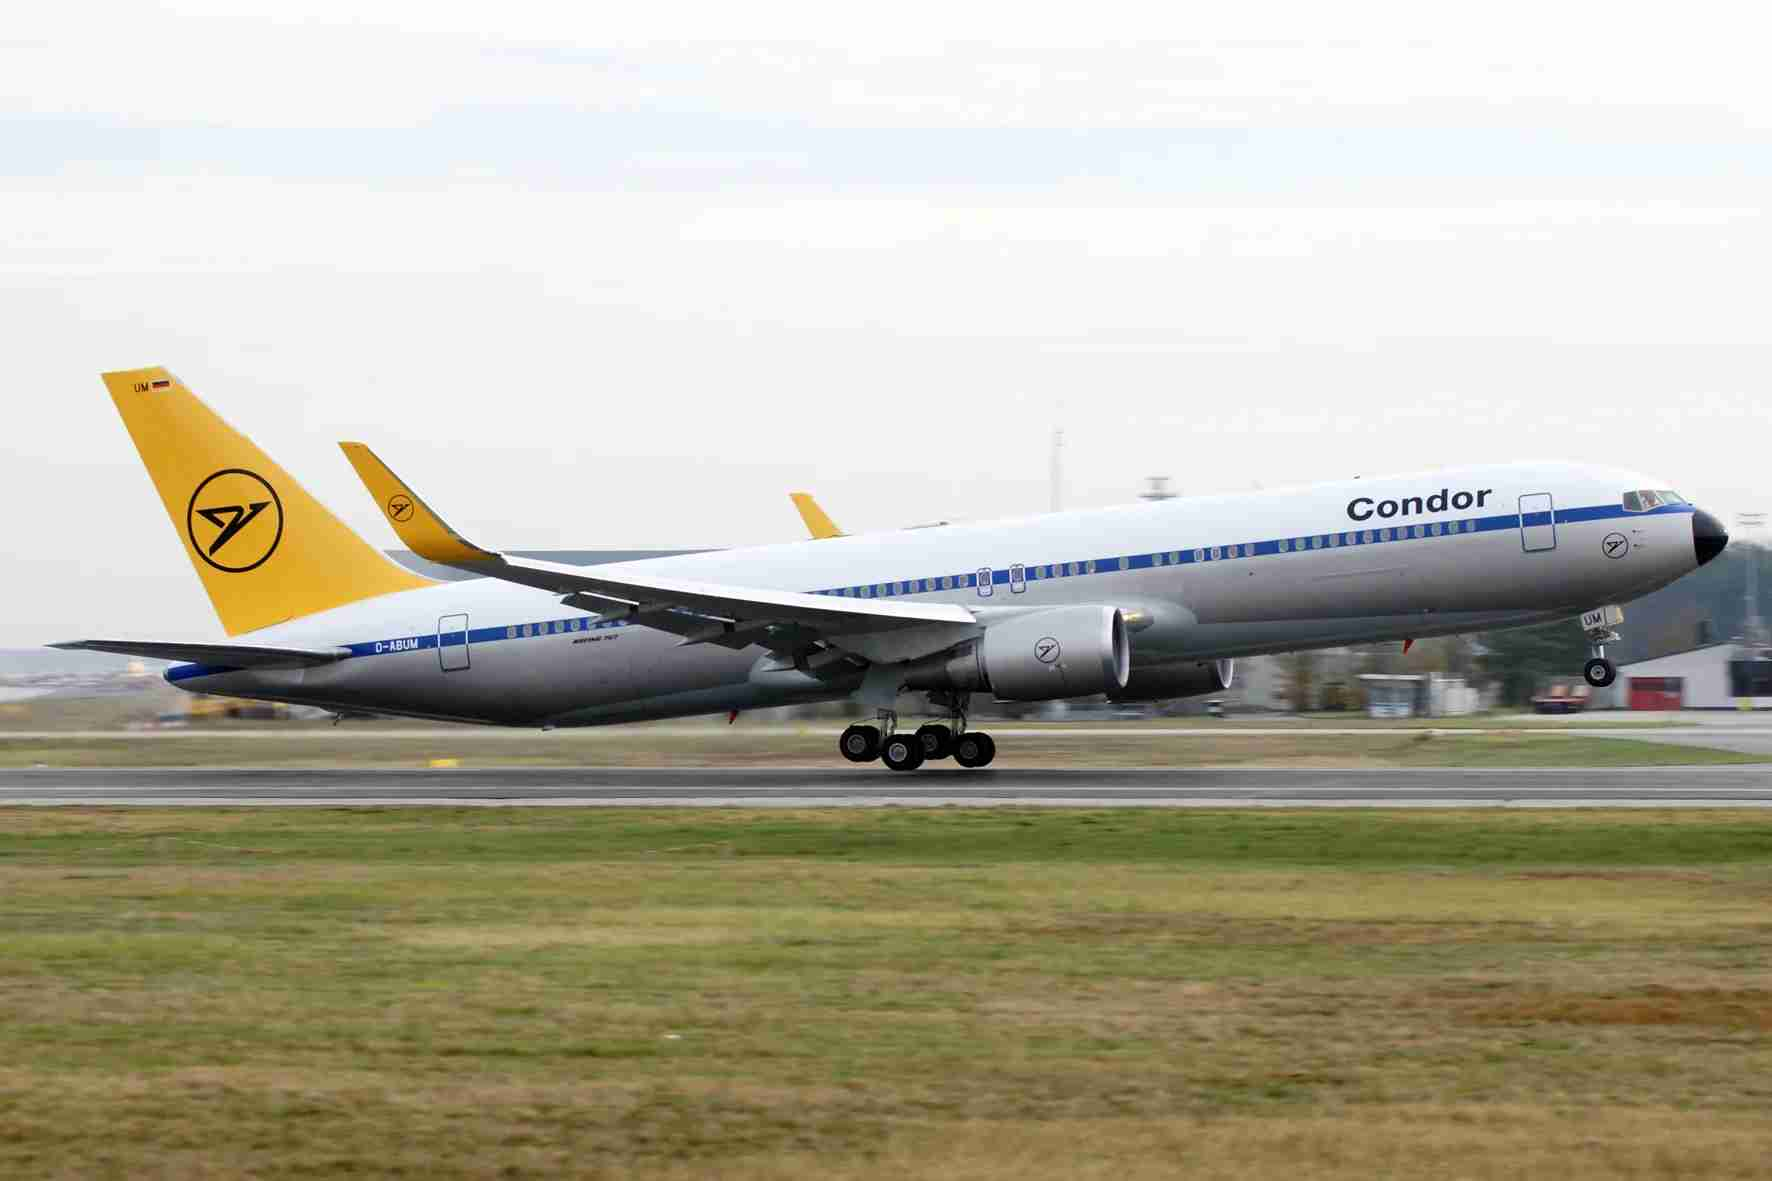 A Condor Boeing 767-300ER in a heritage livery. (Photo courtesy of Condor)